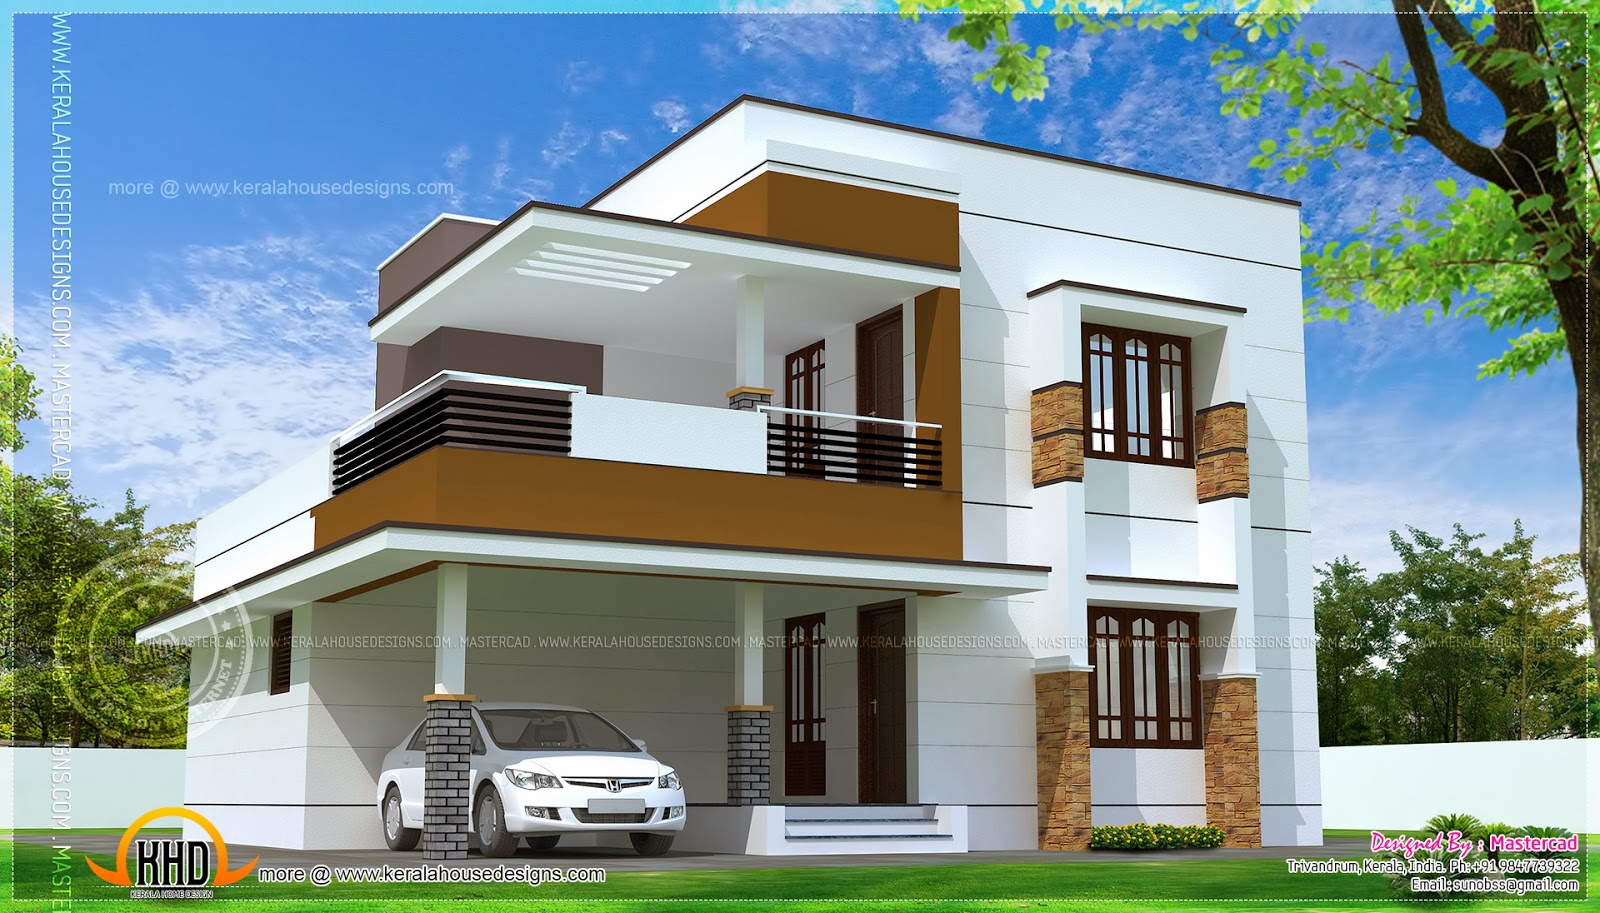 November 2013 kerala home design and floor plans - Modern house designs ...